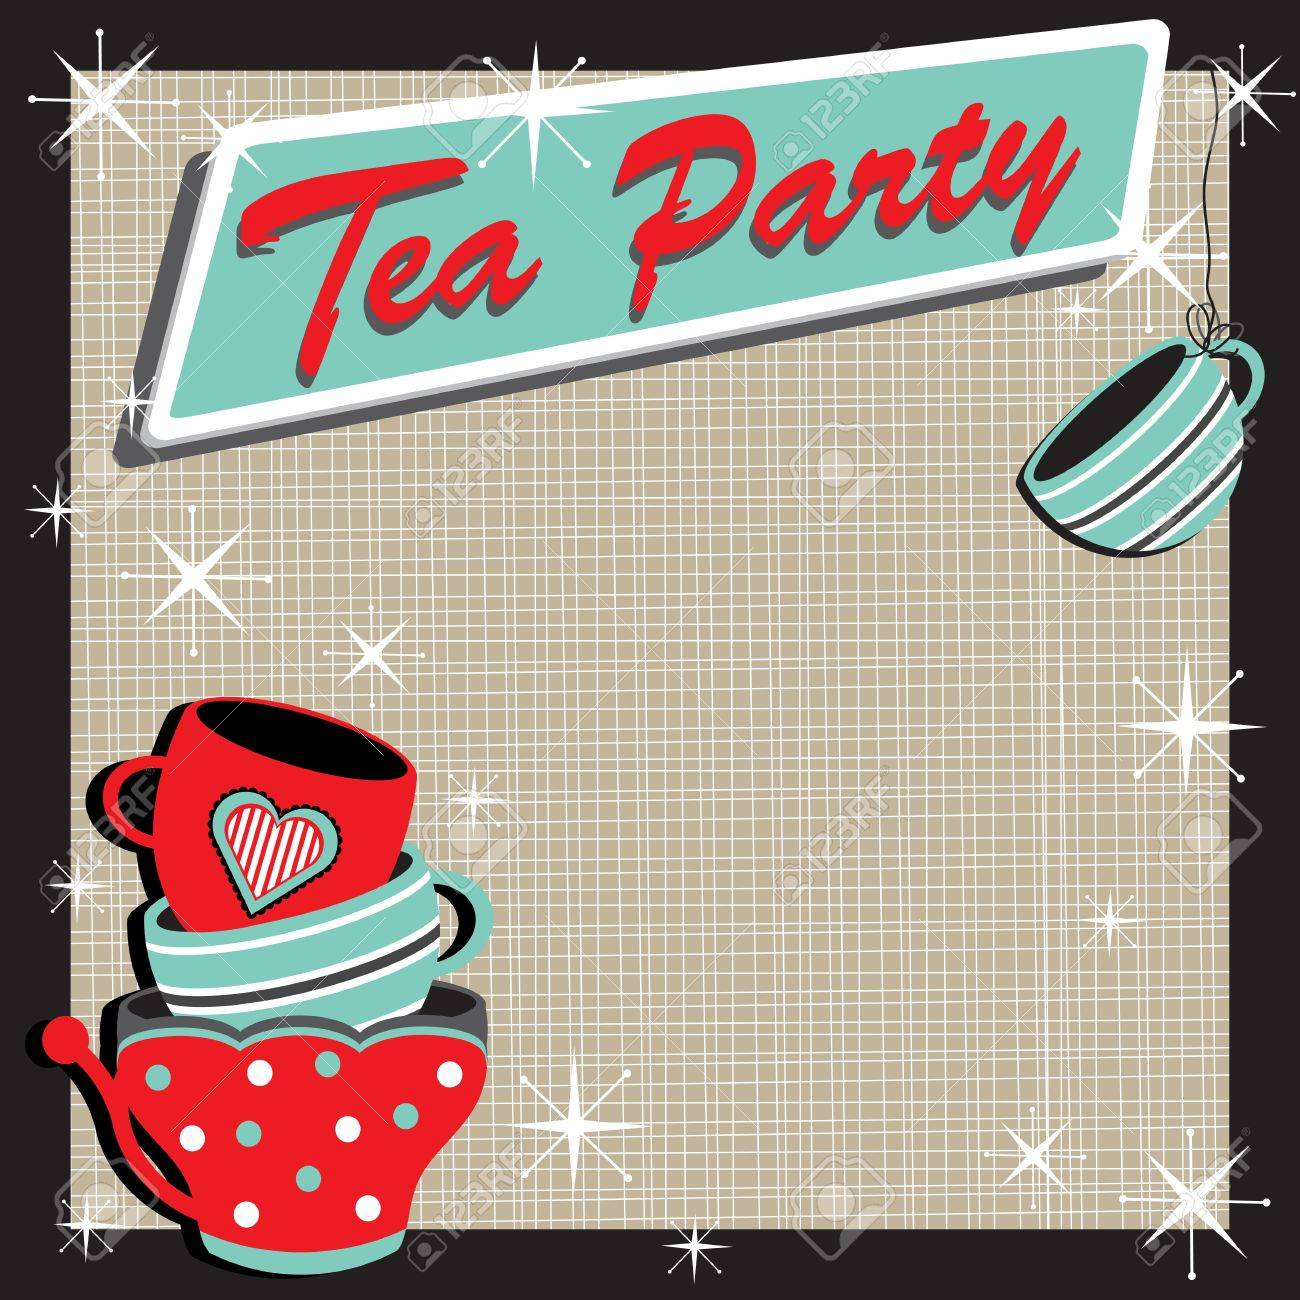 Elegant tea party invitation template with teacups cartoon vector - Tea Party Stacked Tea Cups Tea Party Invitation In A Retro Style